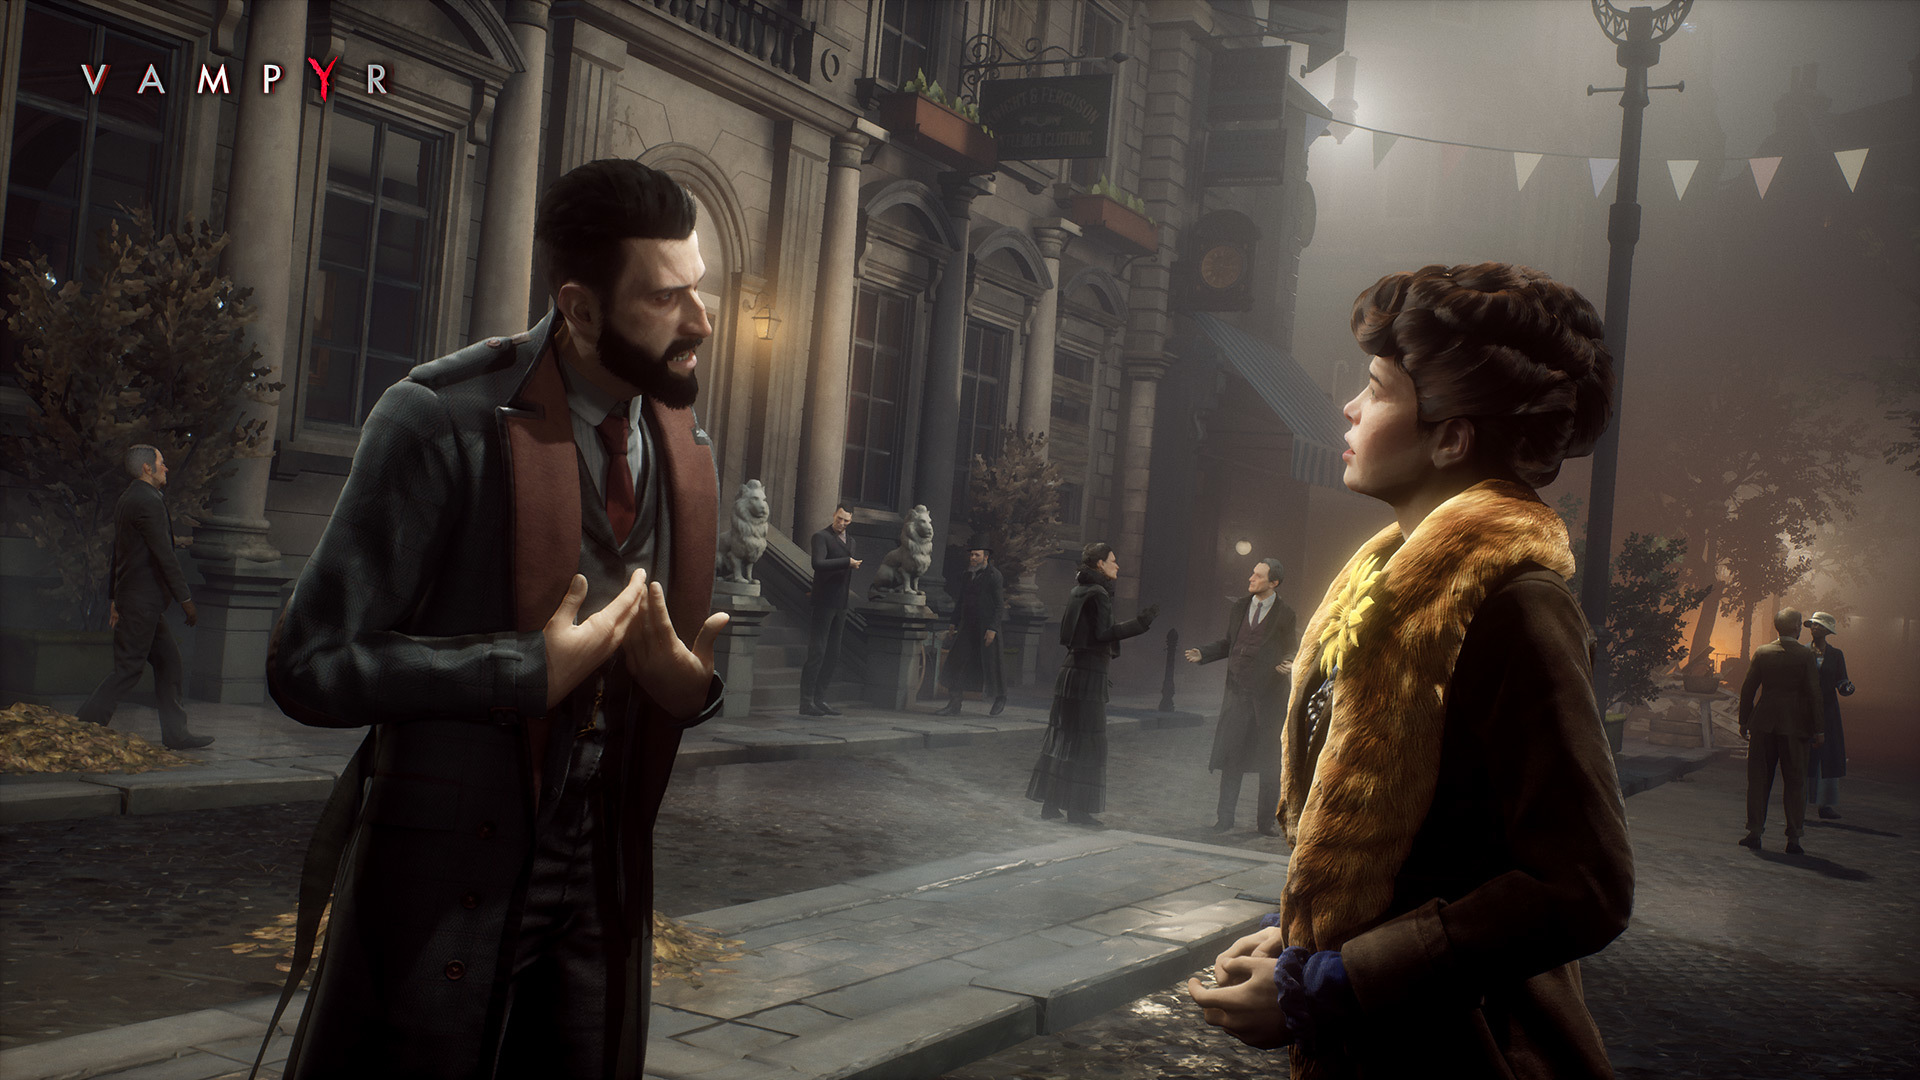 Vampyr Review - Feels So Good To Be Bad